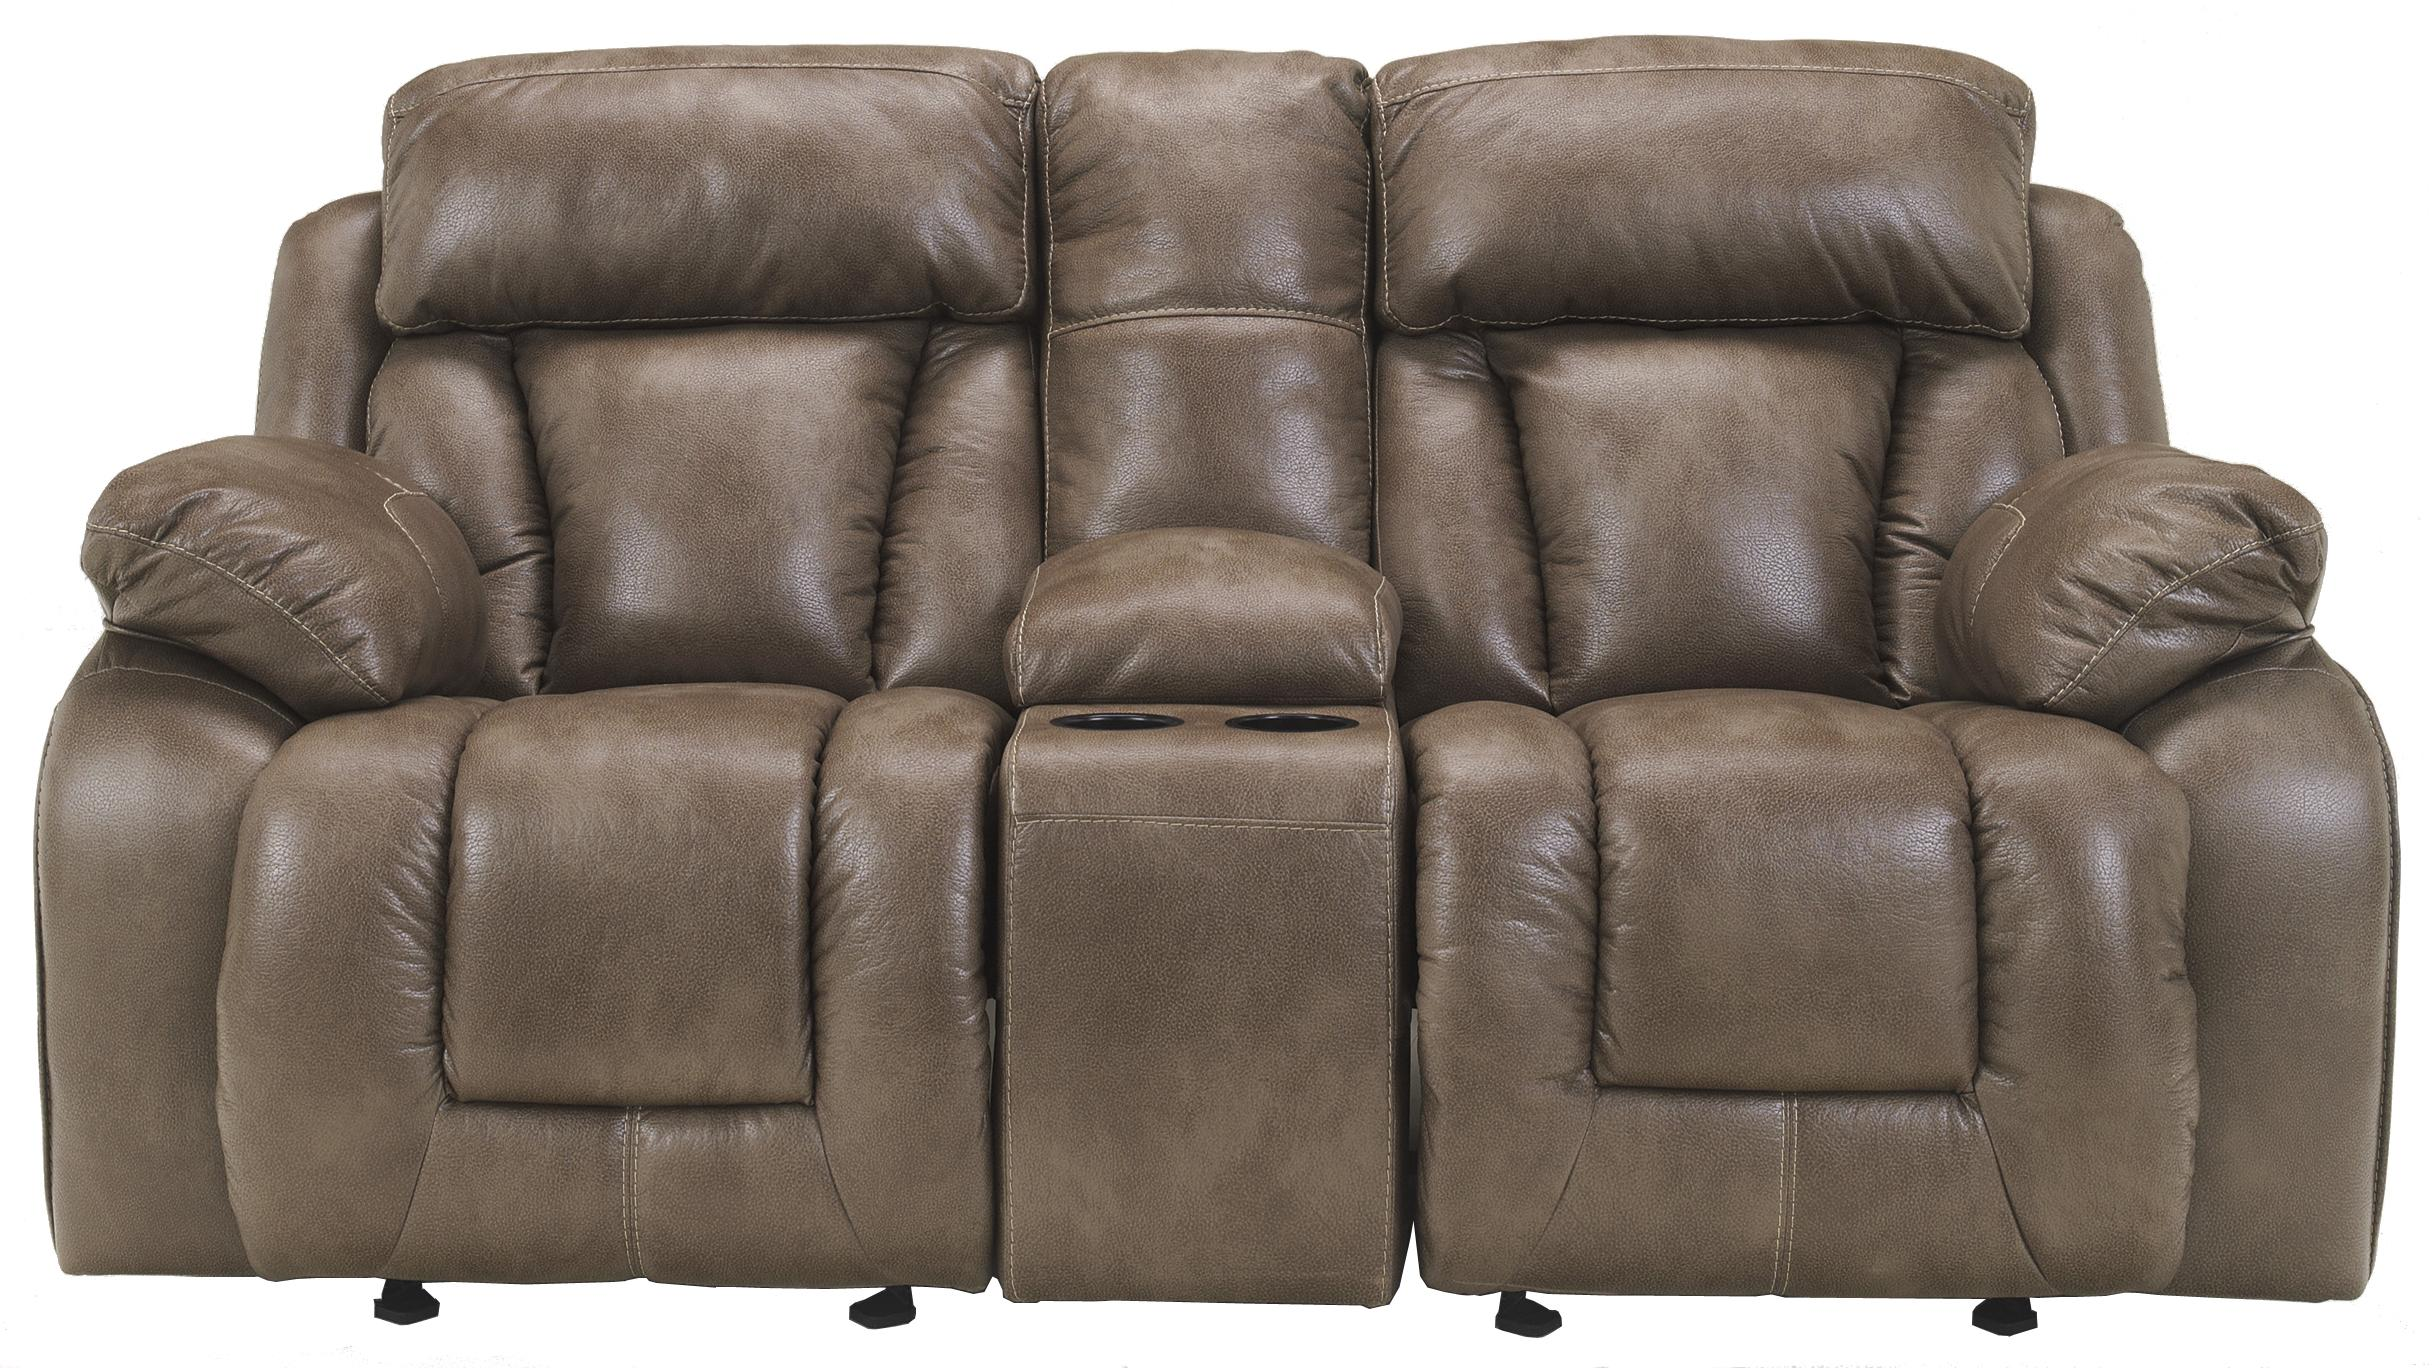 Ashley Furniture Loral - Sable Glider Reclining Power Loveseat w/ Console - Item Number: 4220091